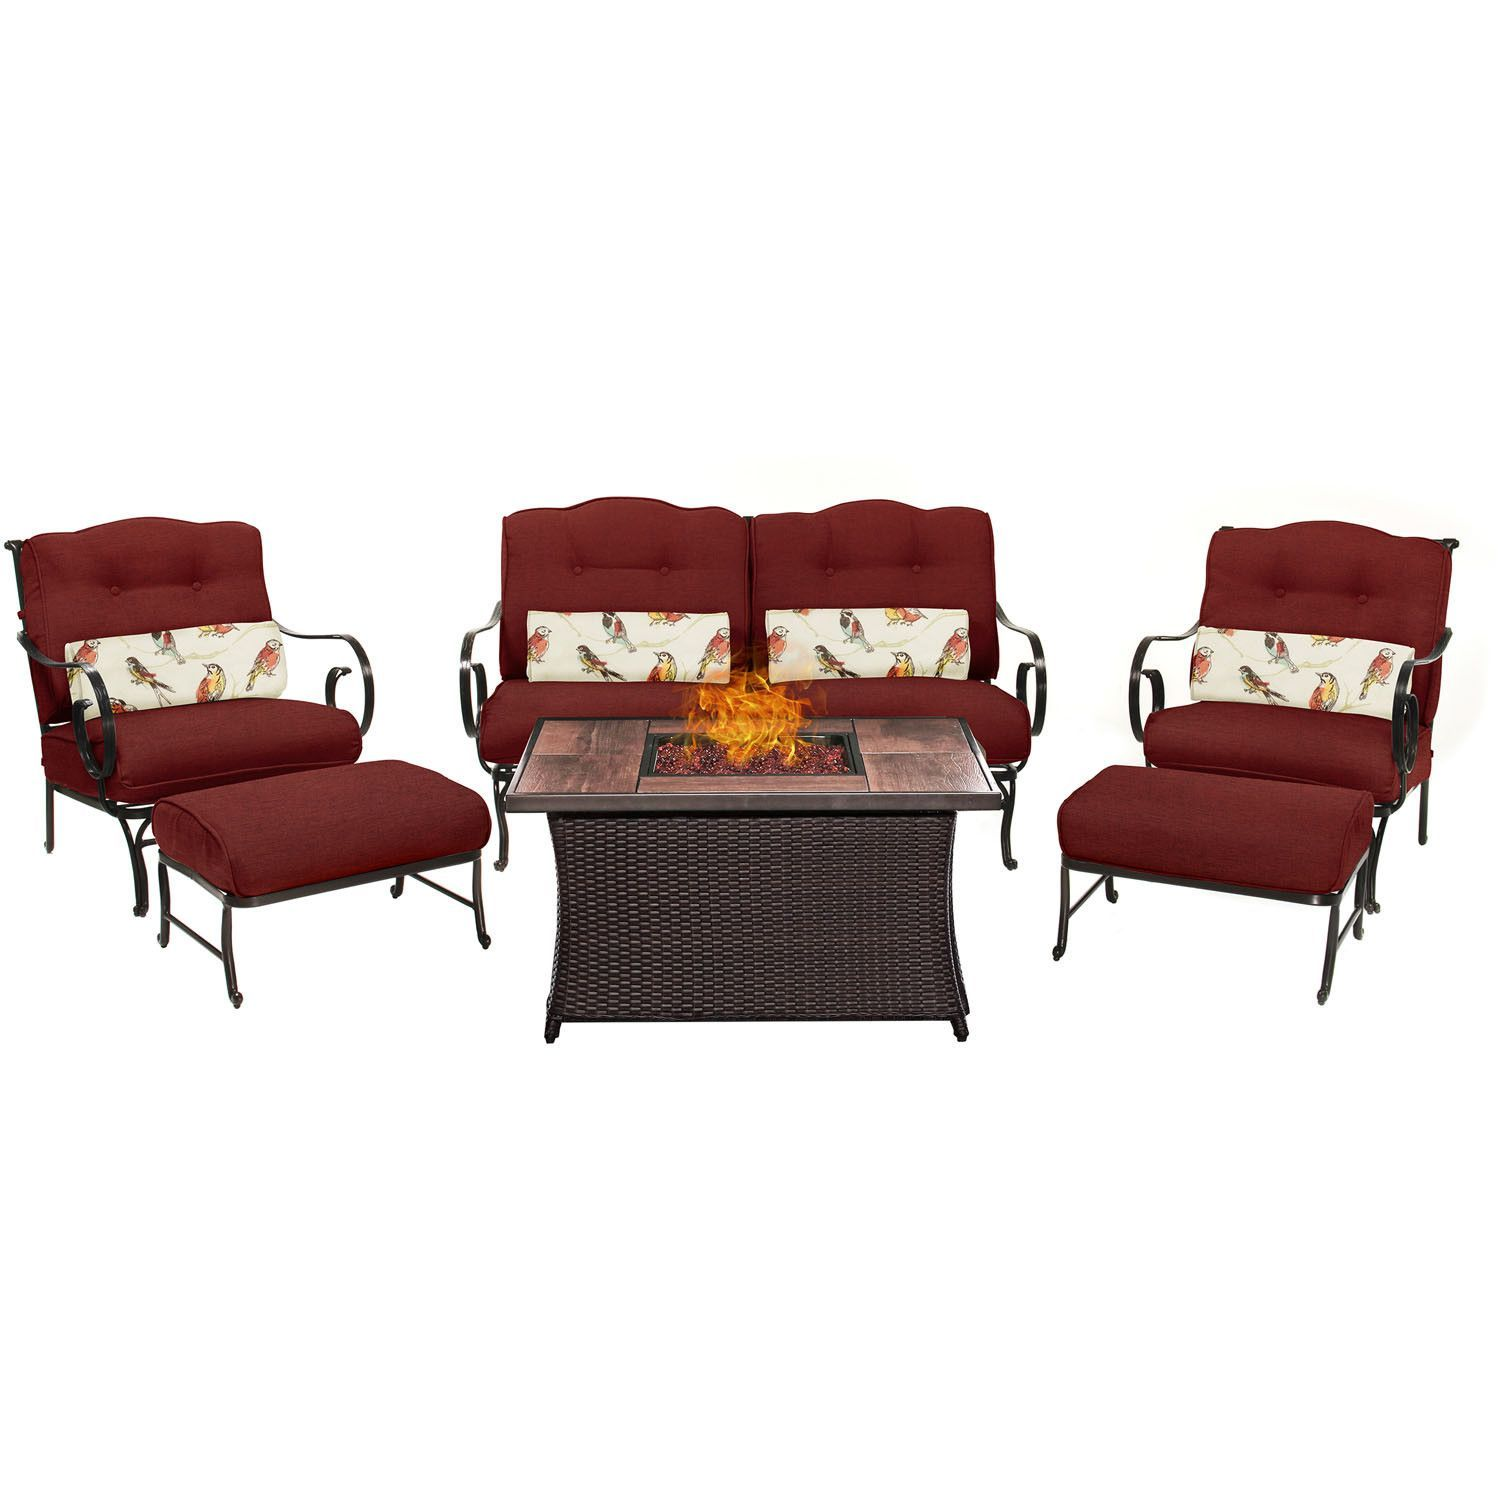 Oceana 6pc Fire Pit Set with Wood Grain Tile Top - OCE6PCFP-RED-WG - Crimson Red